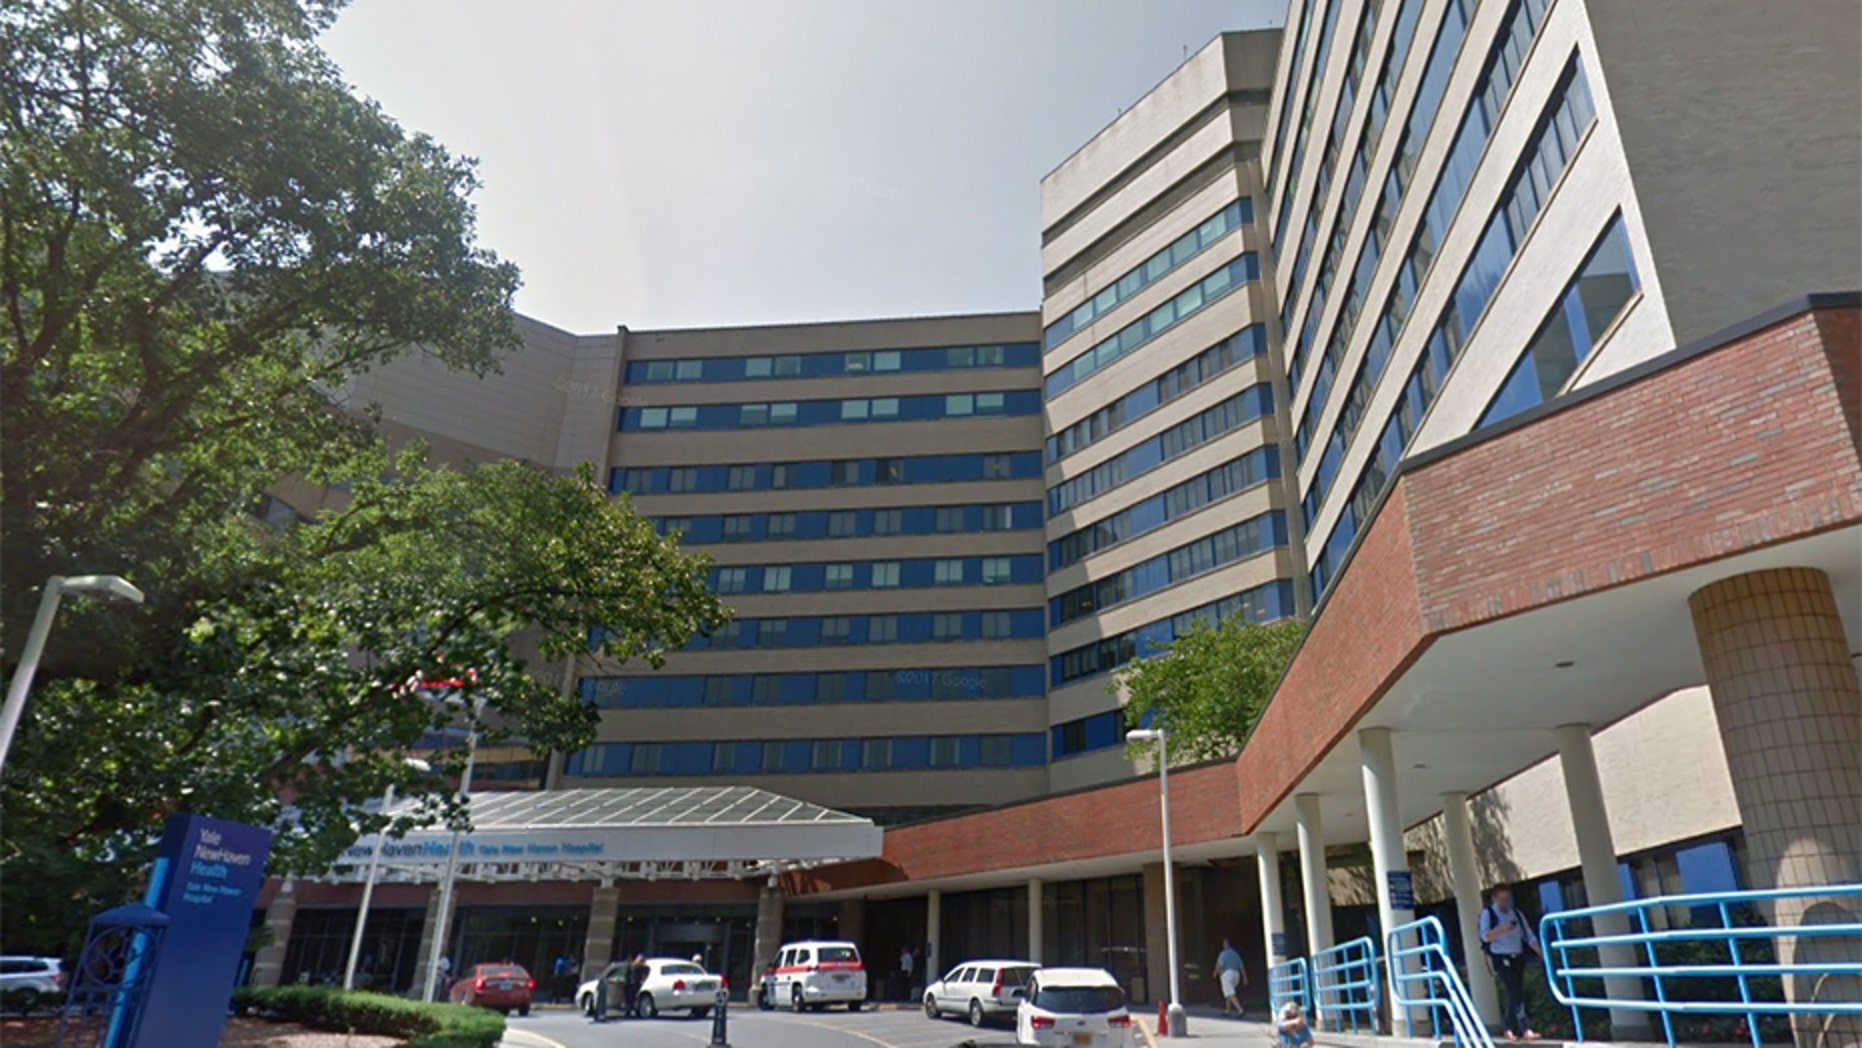 Jill Grewcock, a clinical bed manager at Yale New Haven Hospital, has sued the hospital's parent corporation for wrongful termination.